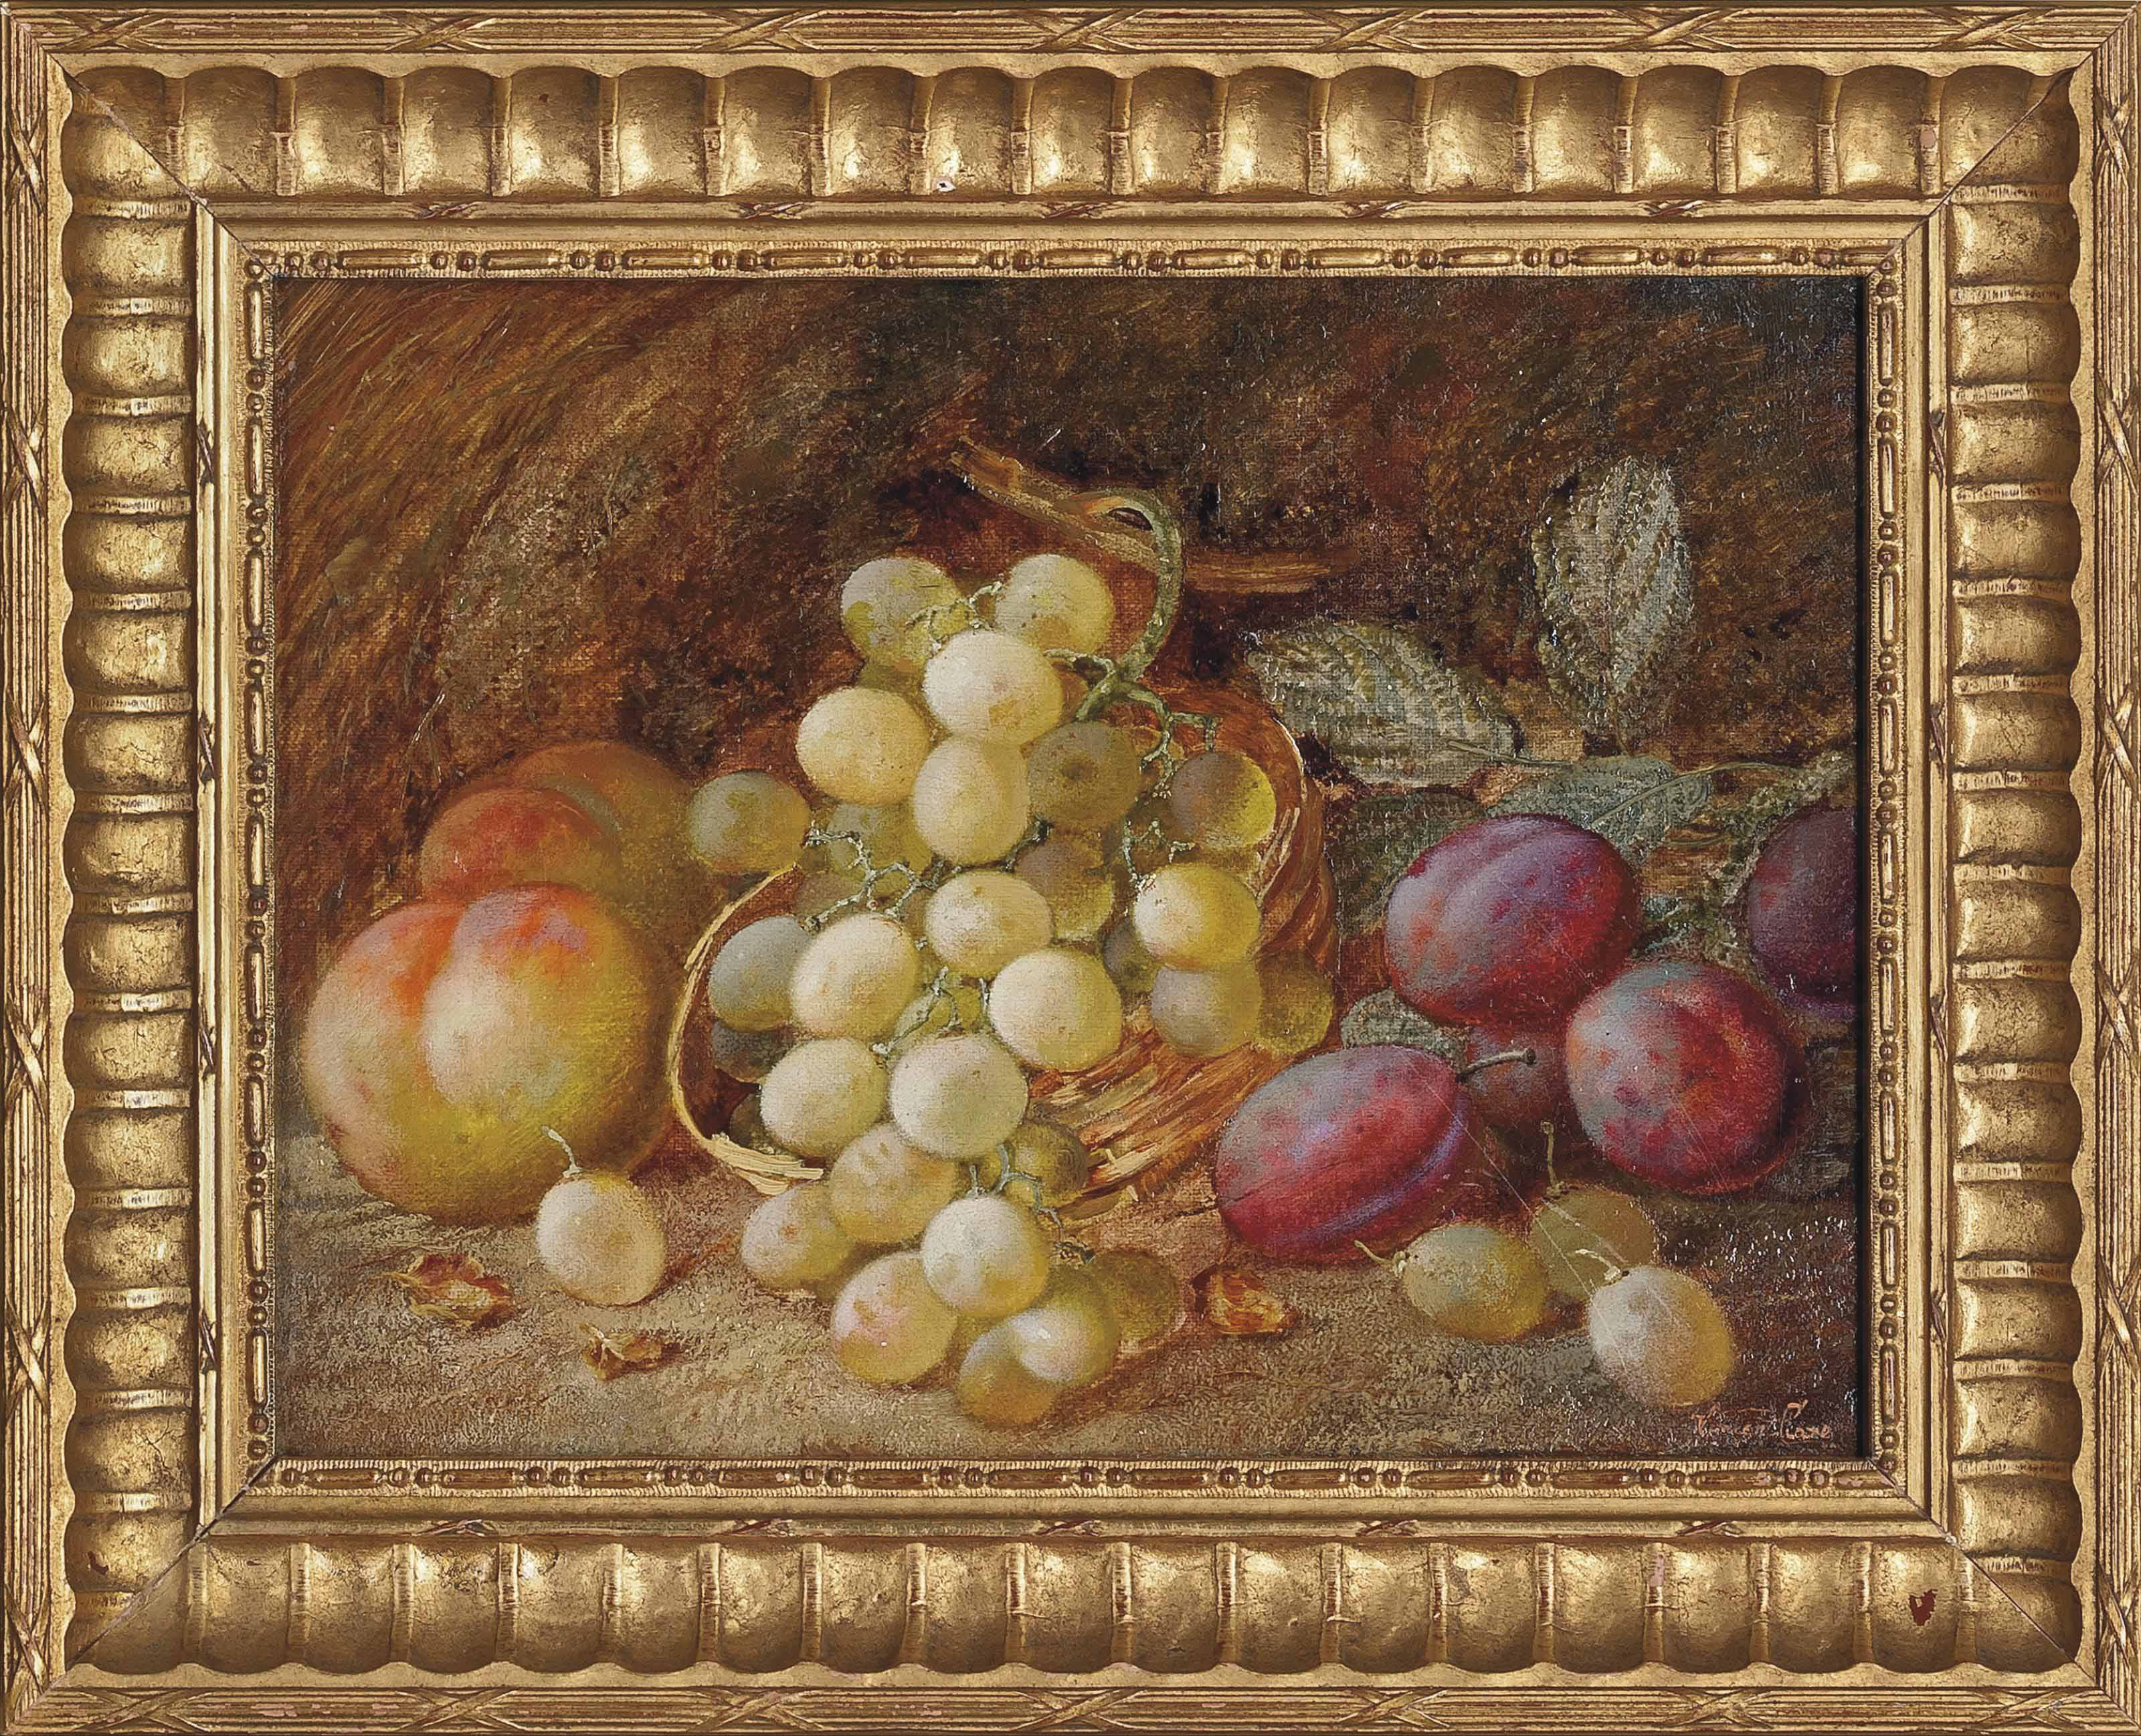 Grapes, peaches and plums on a mossy bank